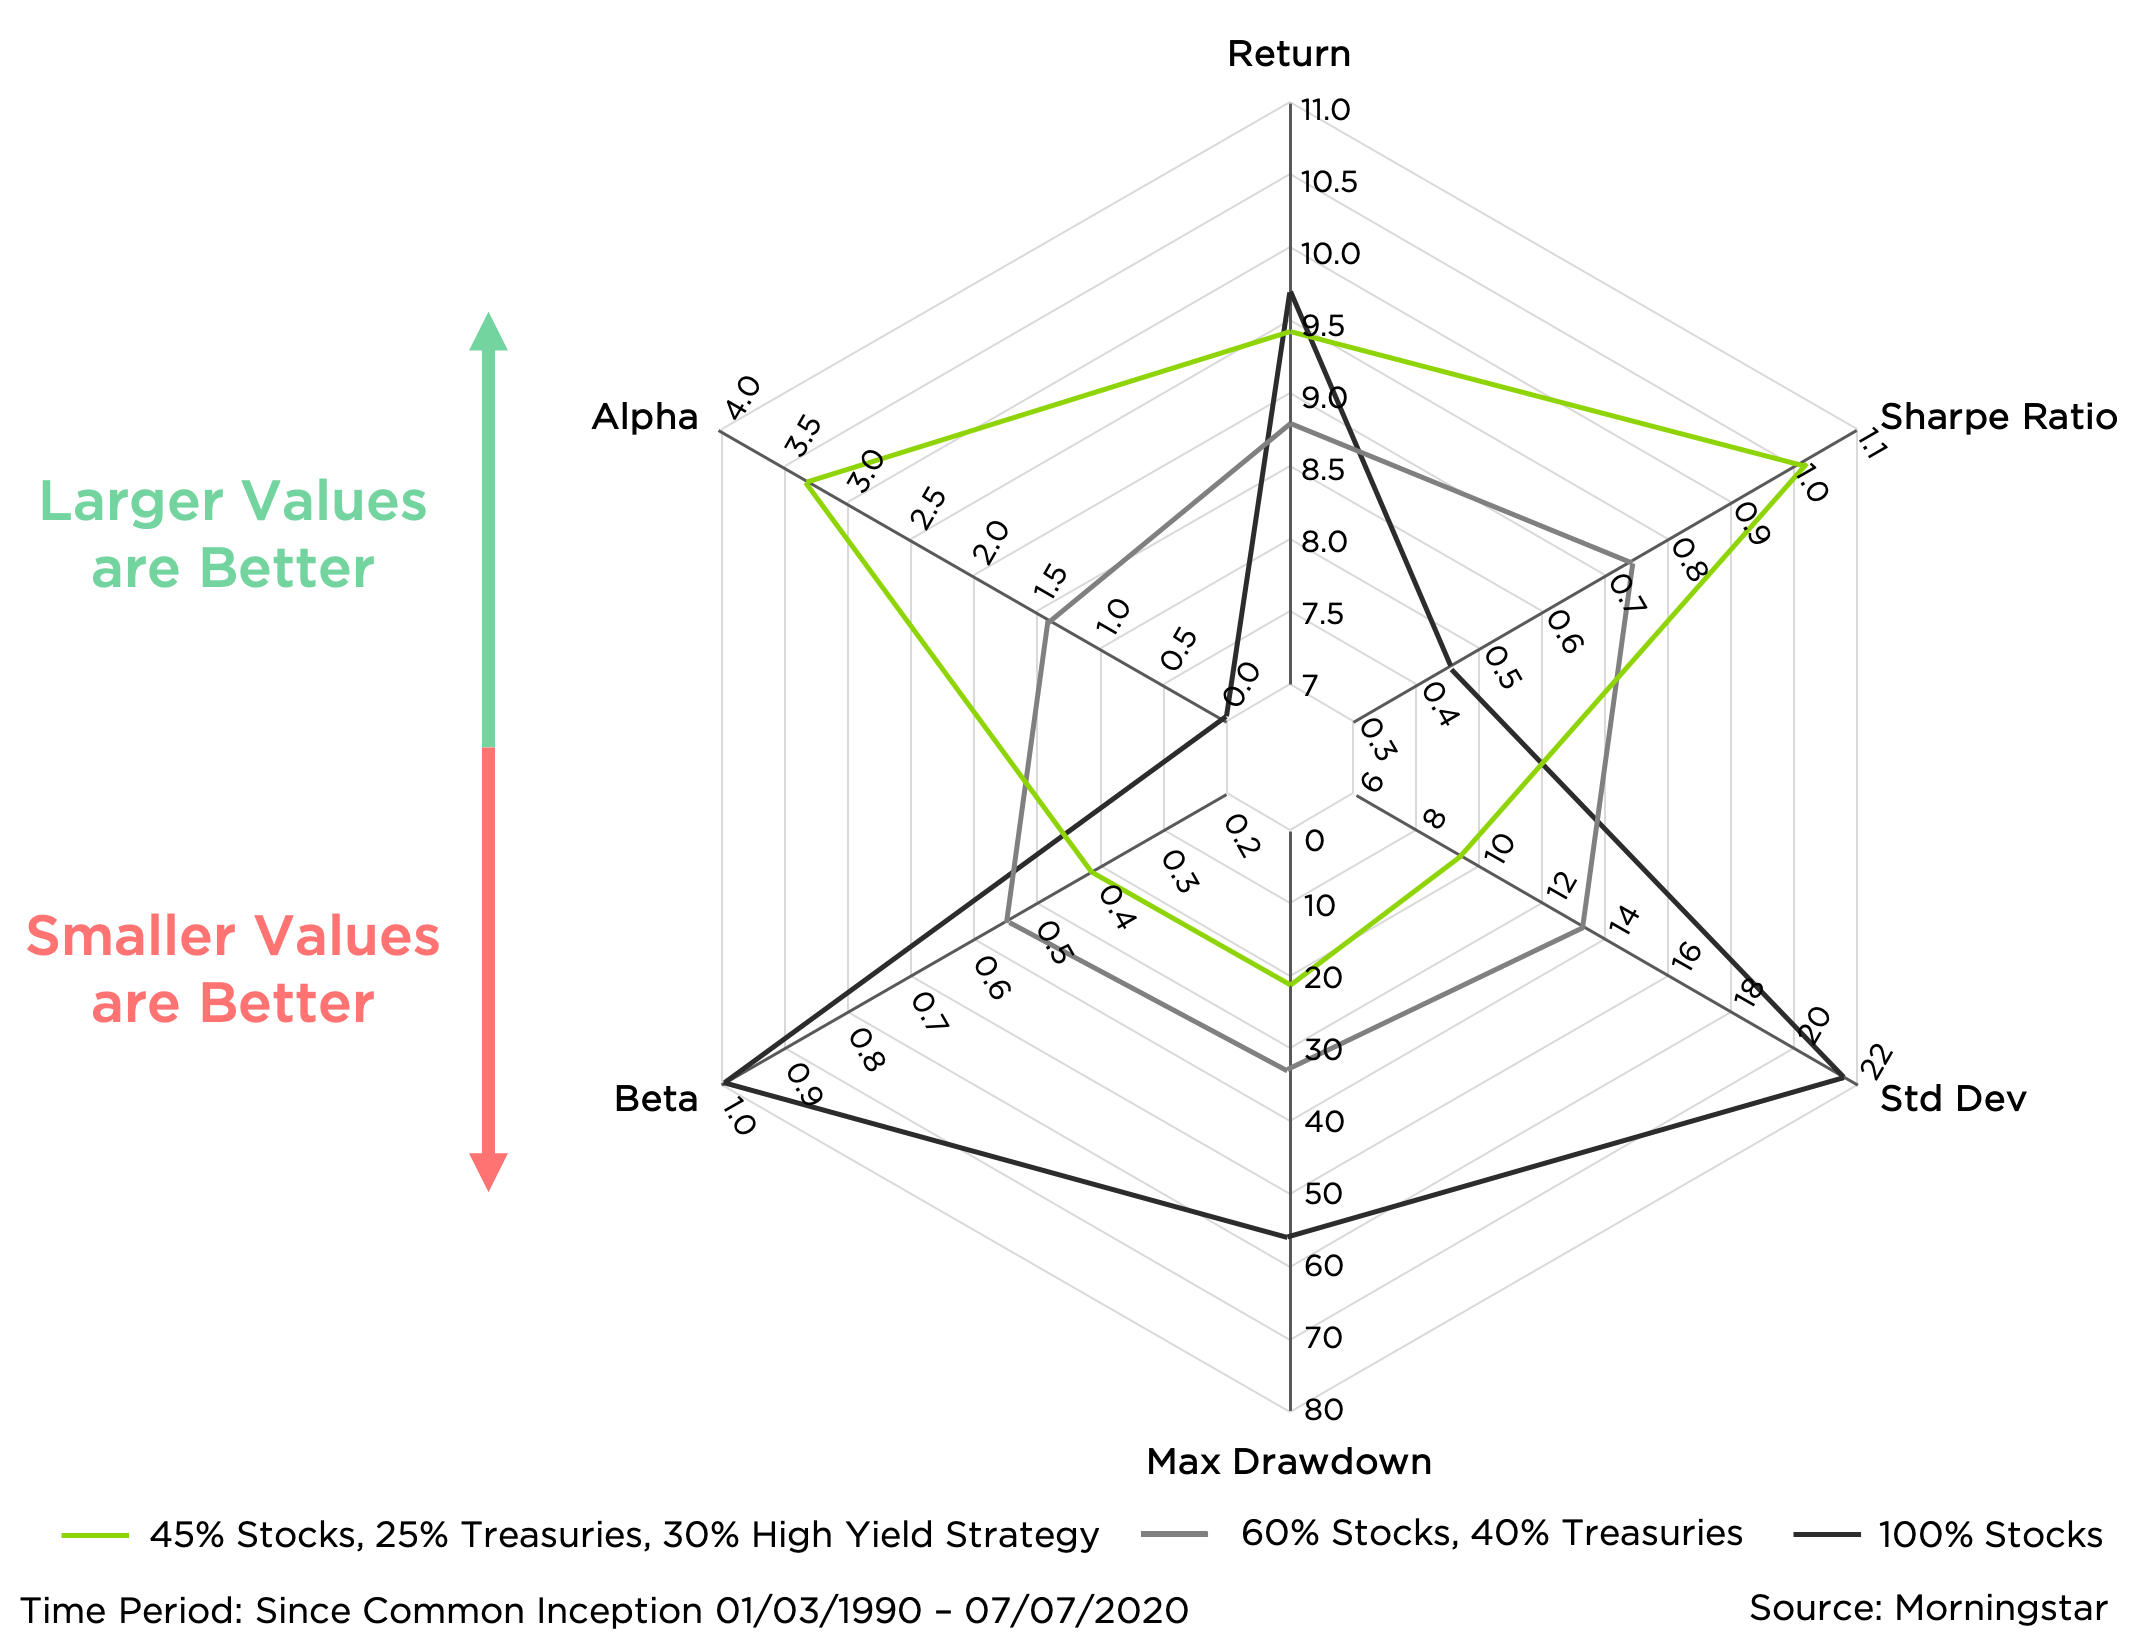 Star Graph - Traditional 60-40 vs. 45-25-30 with High Yield Strategy Investment Metrics